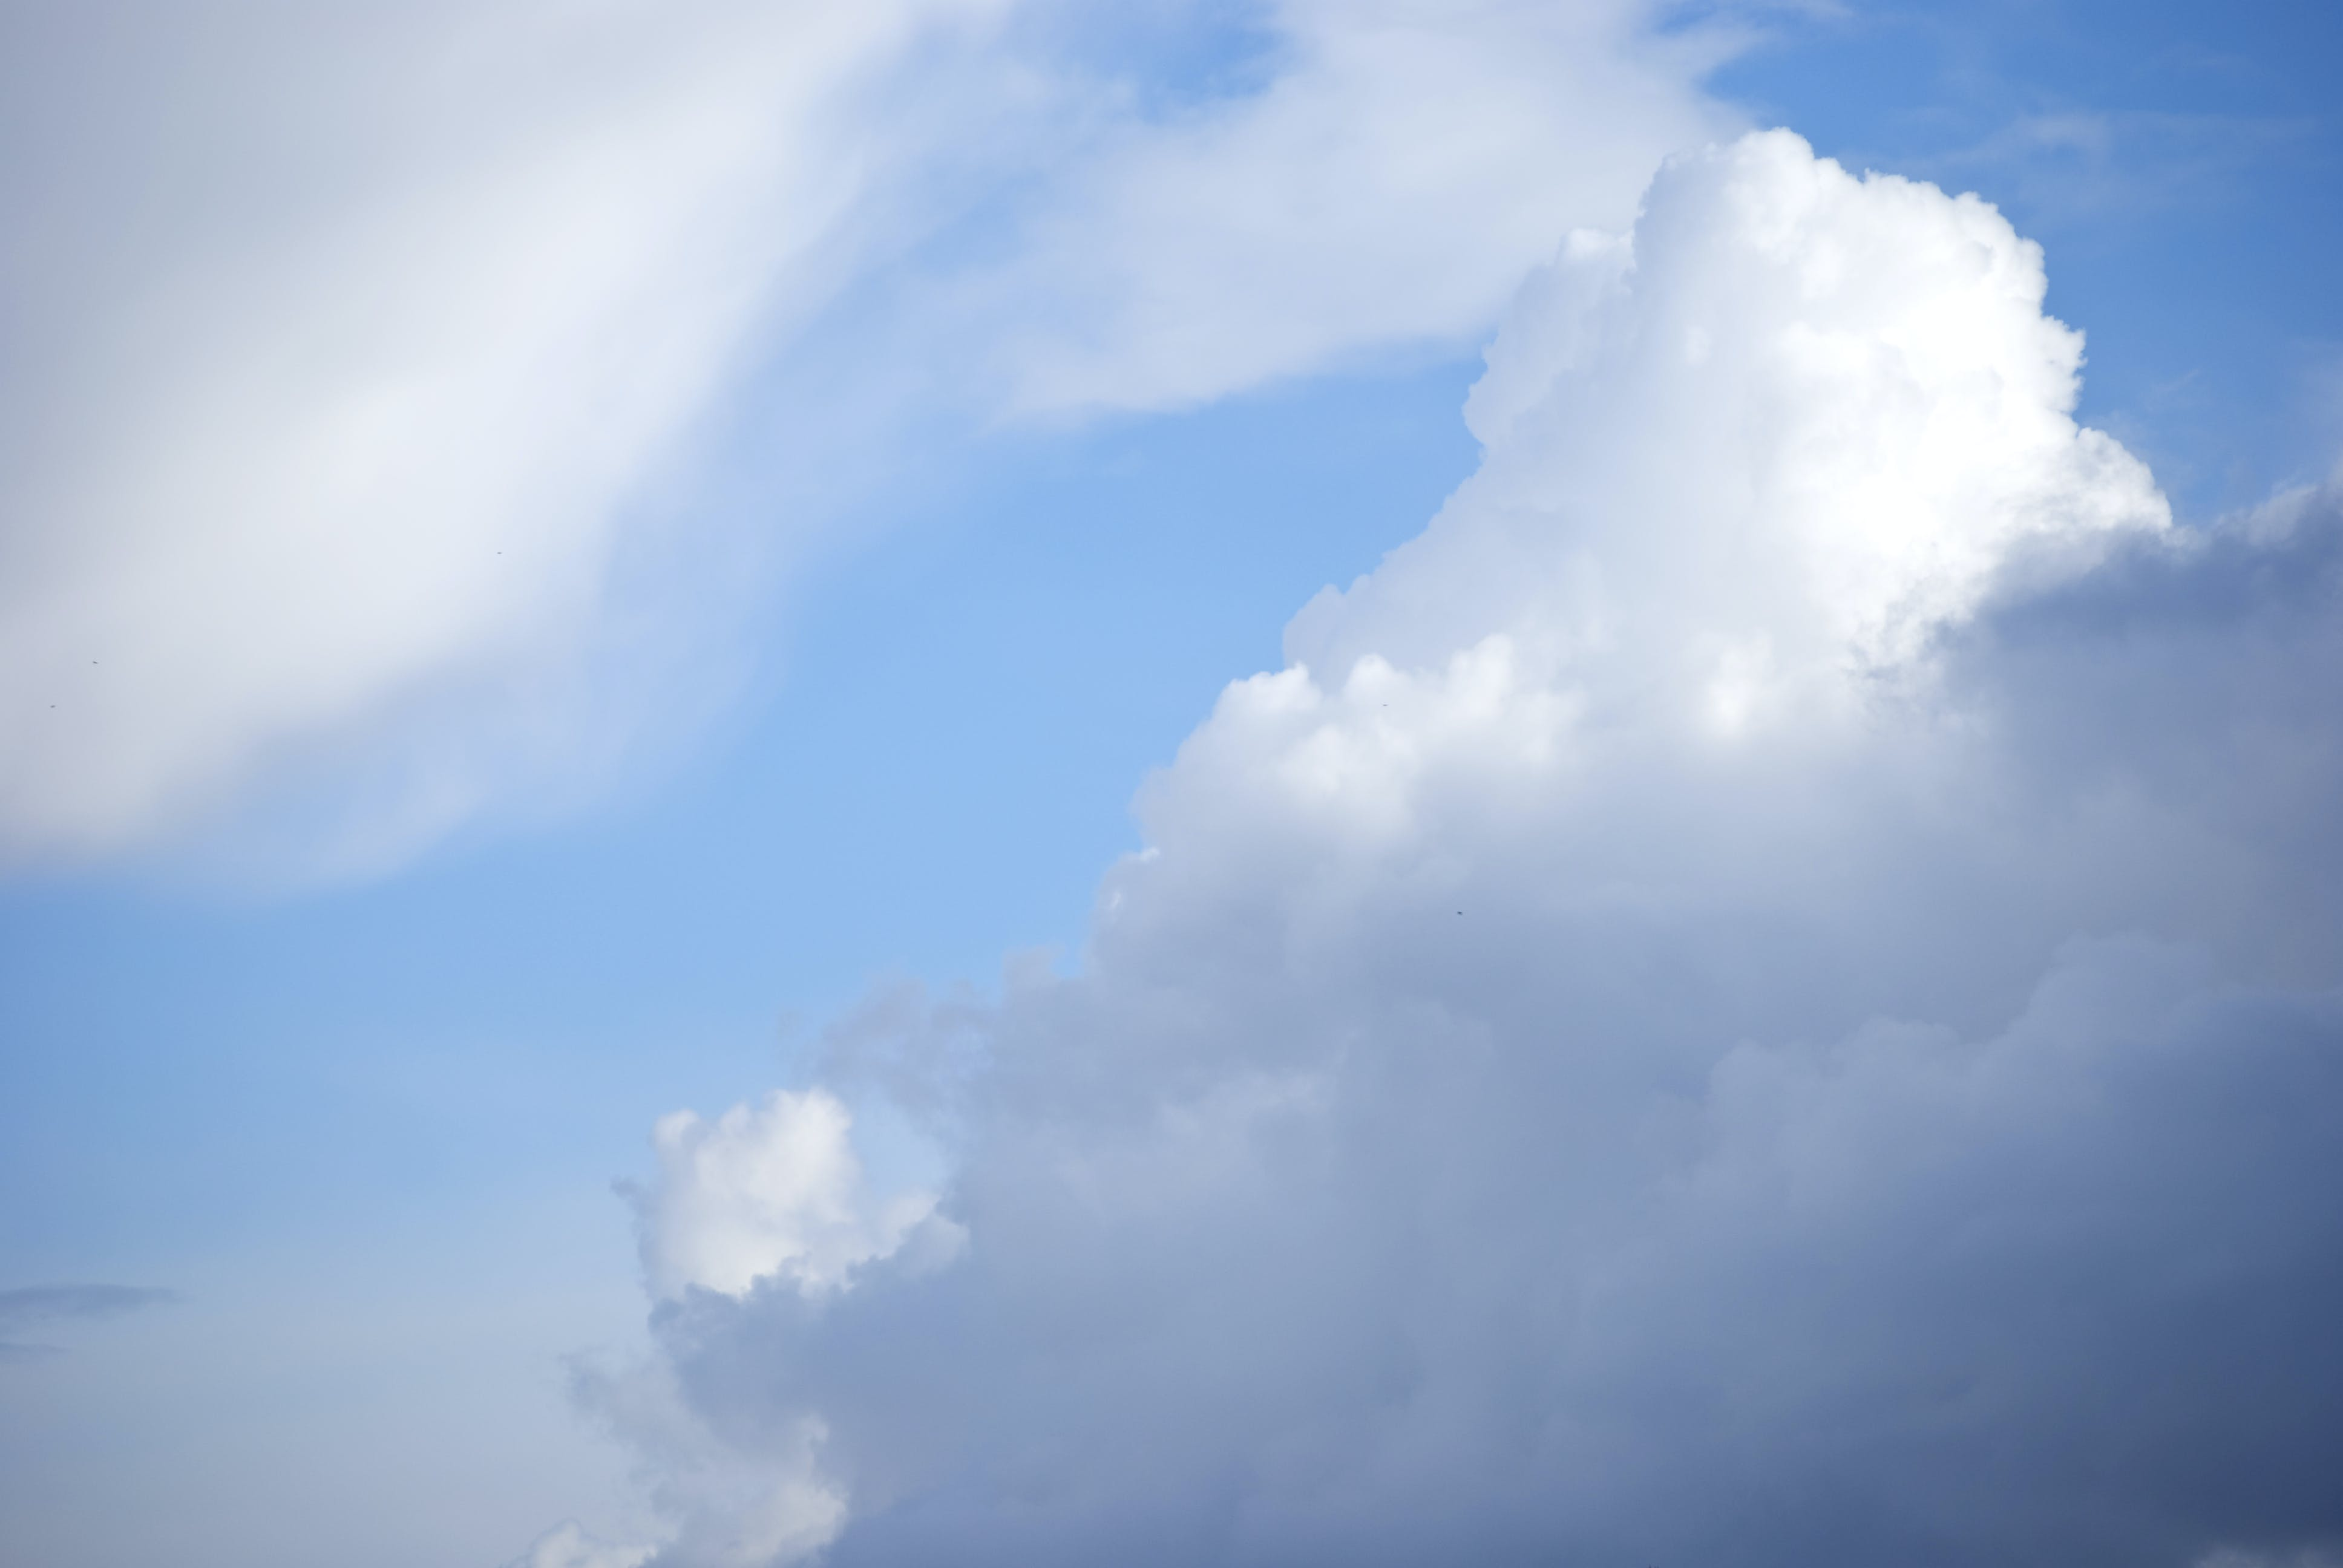 Free stock photo of sky, clouds